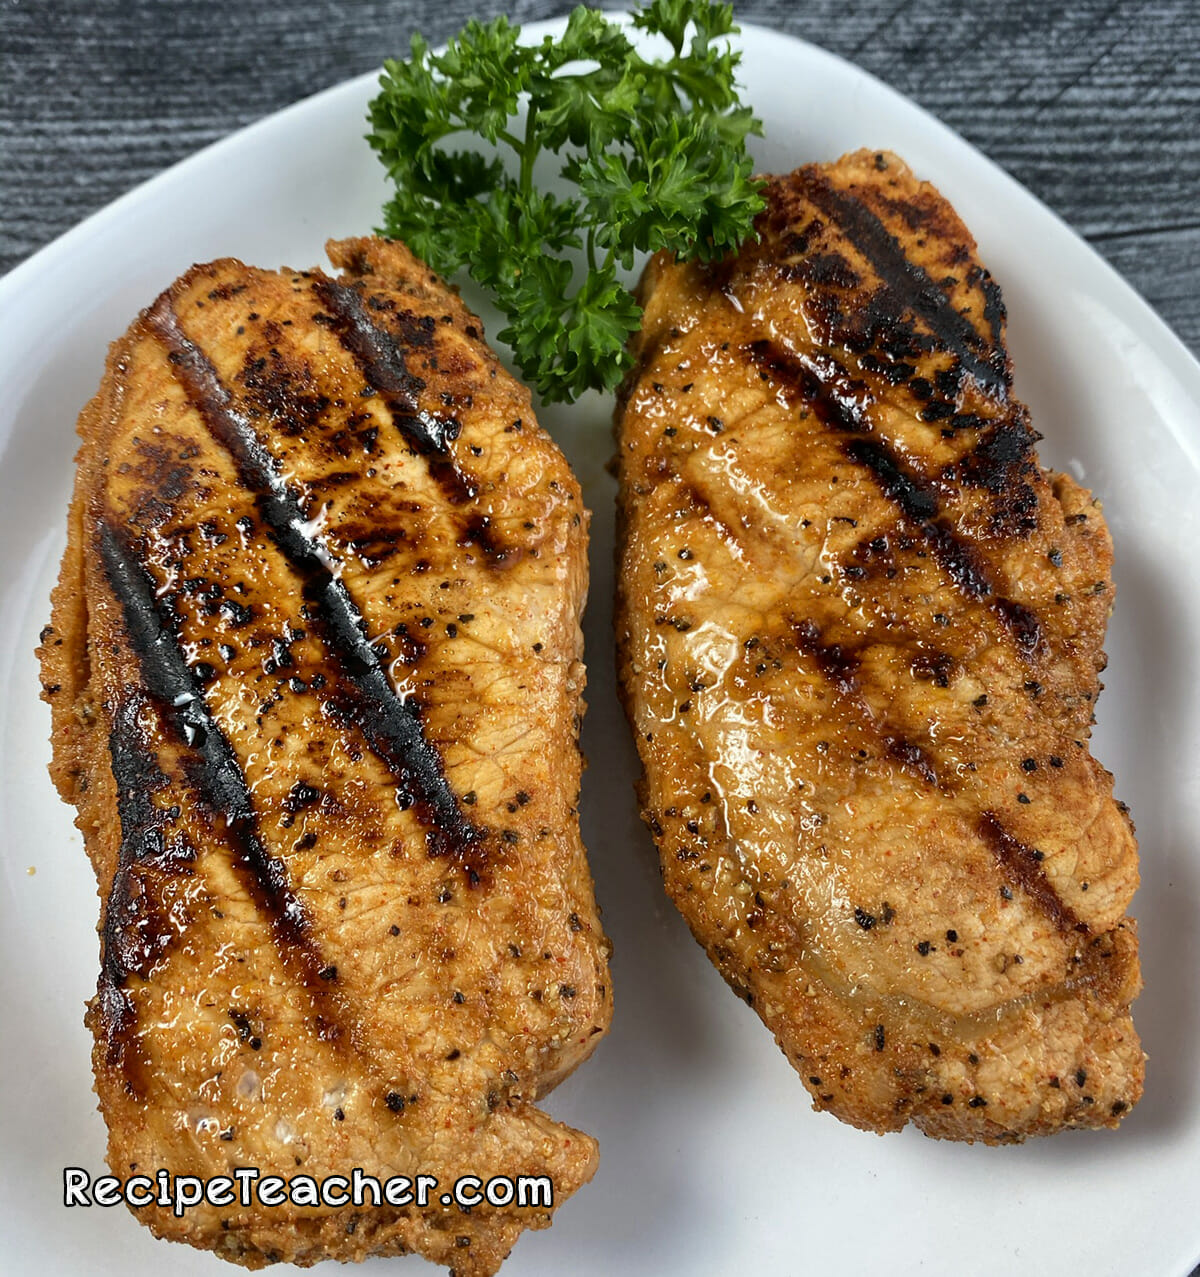 Boneless pork chops cooked on a George Foreman Grill.